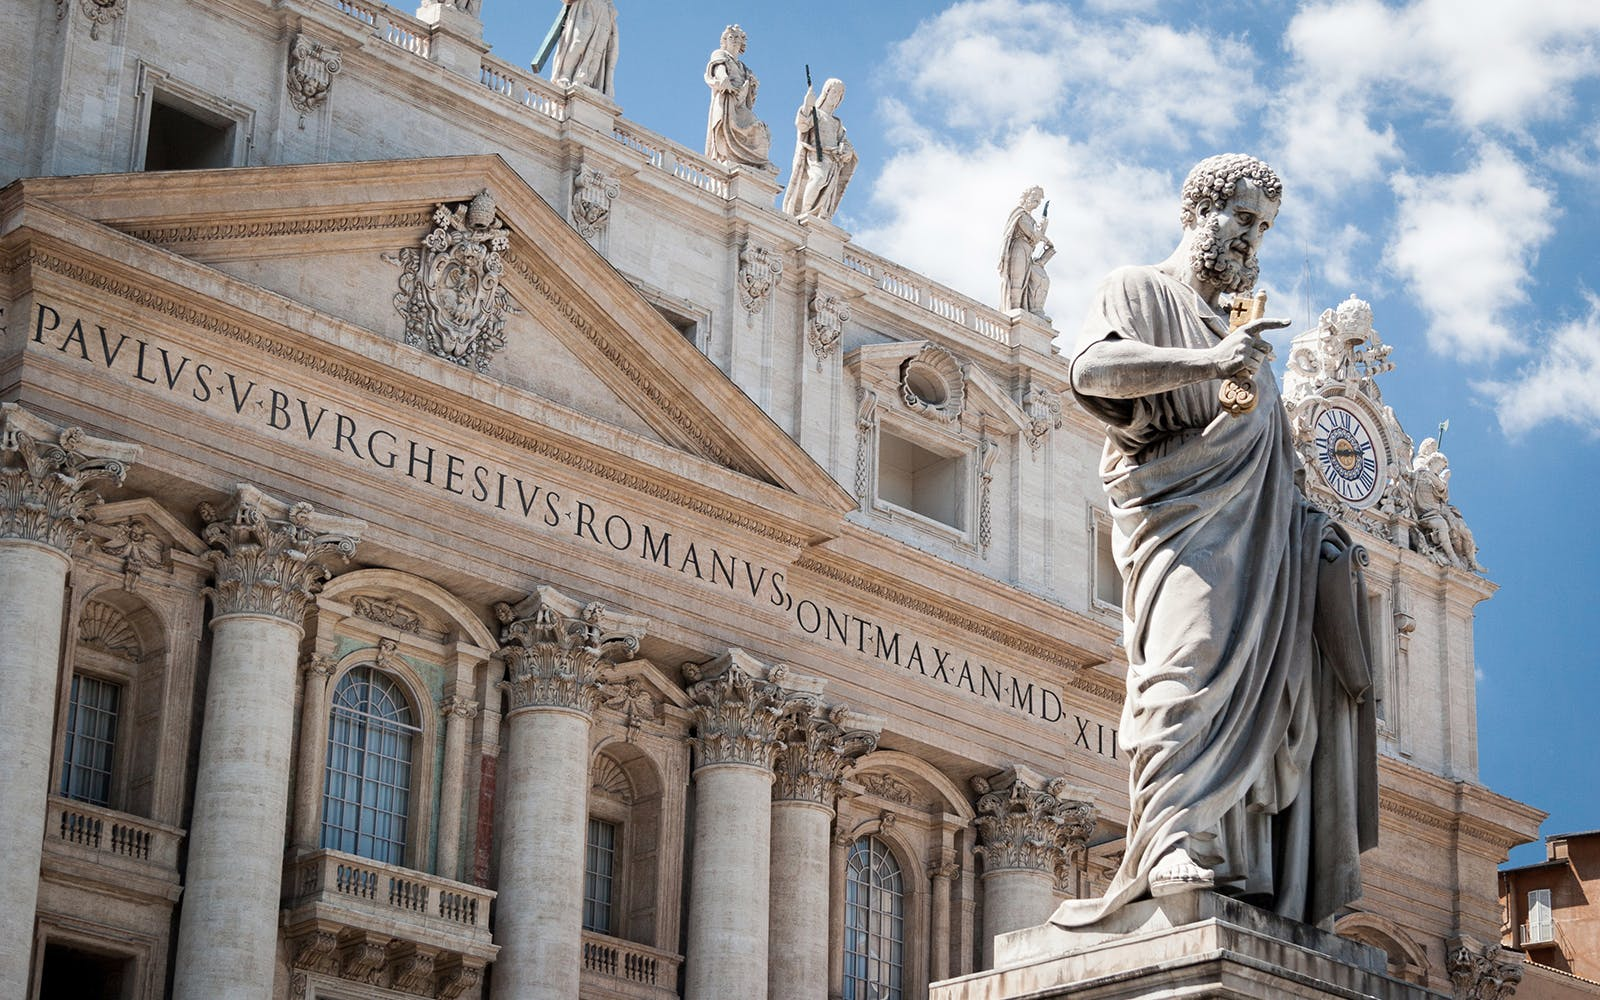 skip the line: guided tour of st. peter's basilica -3